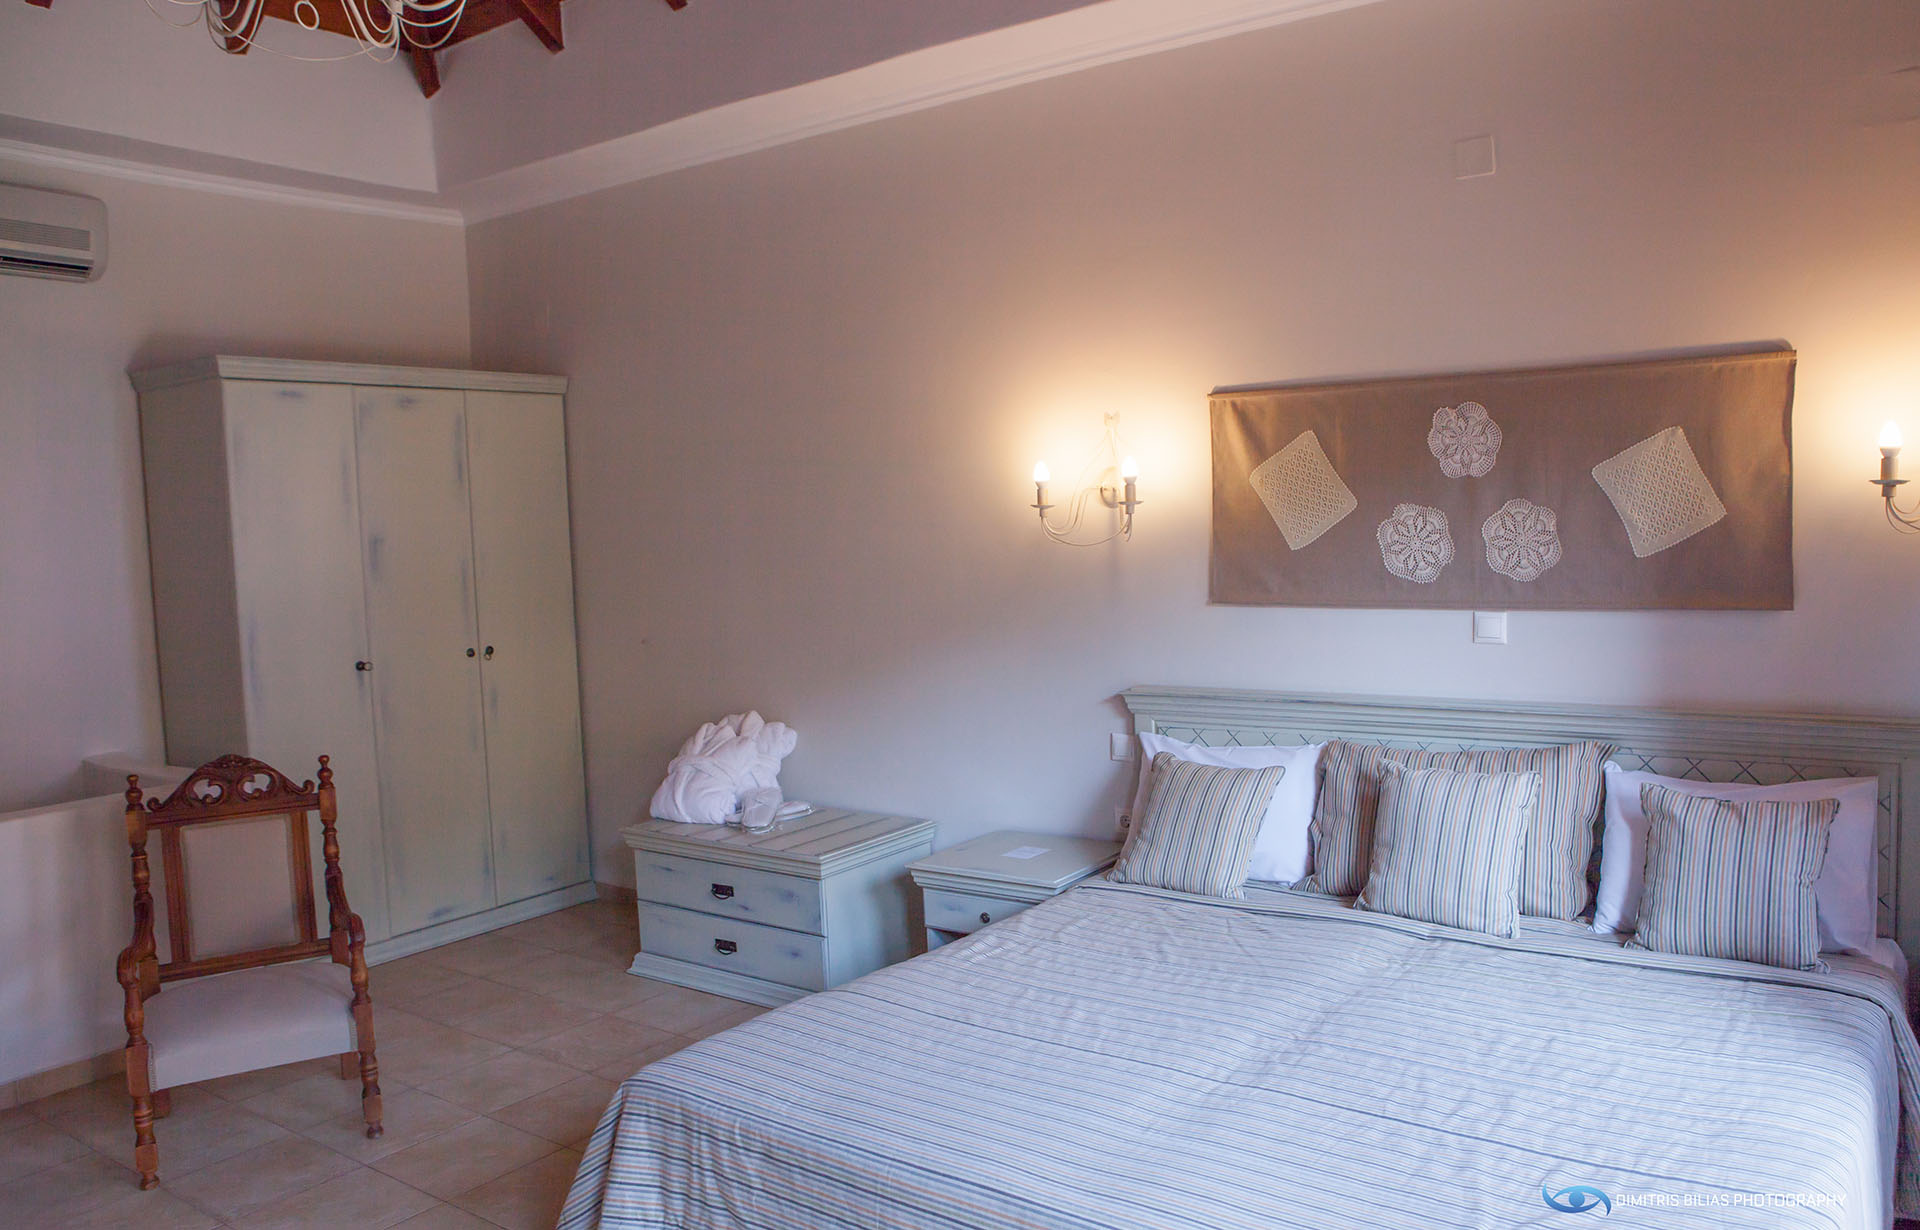 symi accommodation - Iapetos Hotel